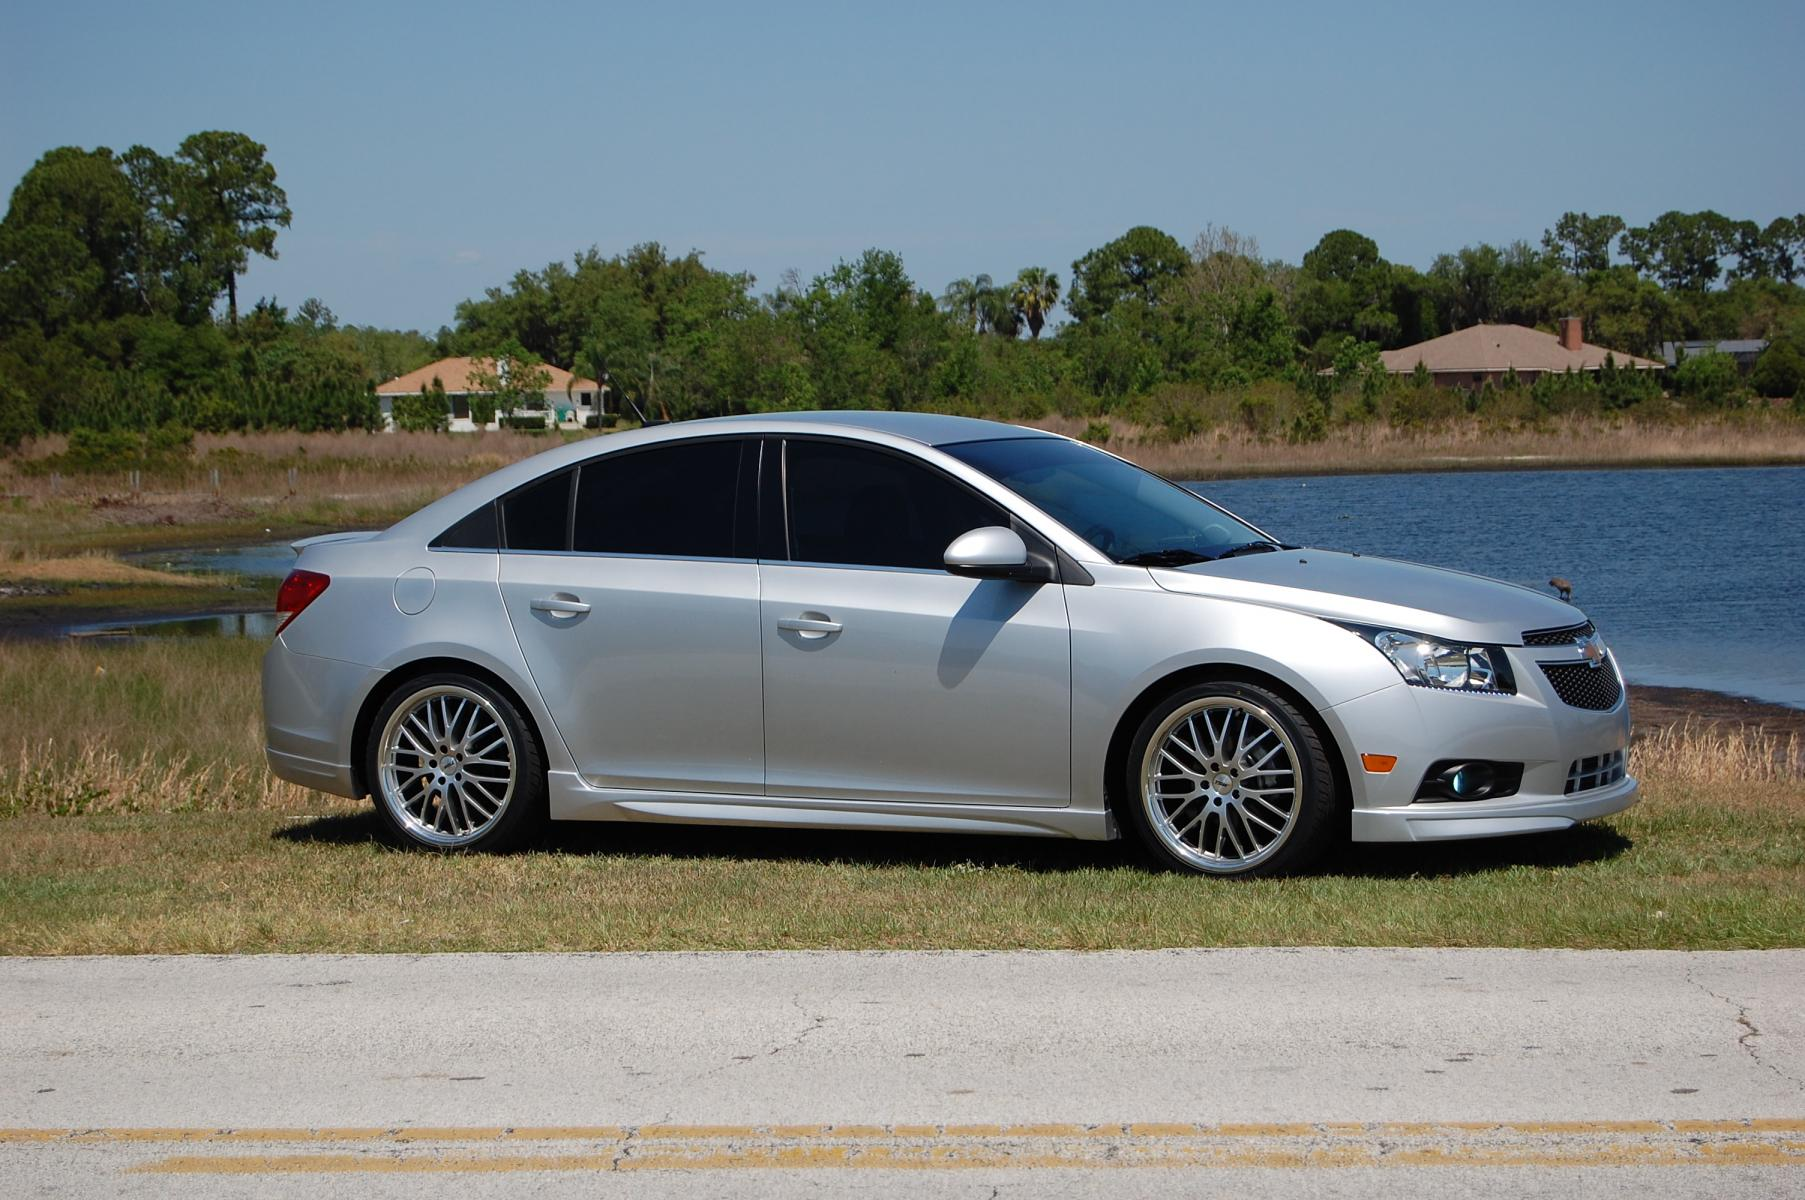 New Body Kit And 19 Wheels On My Cruze